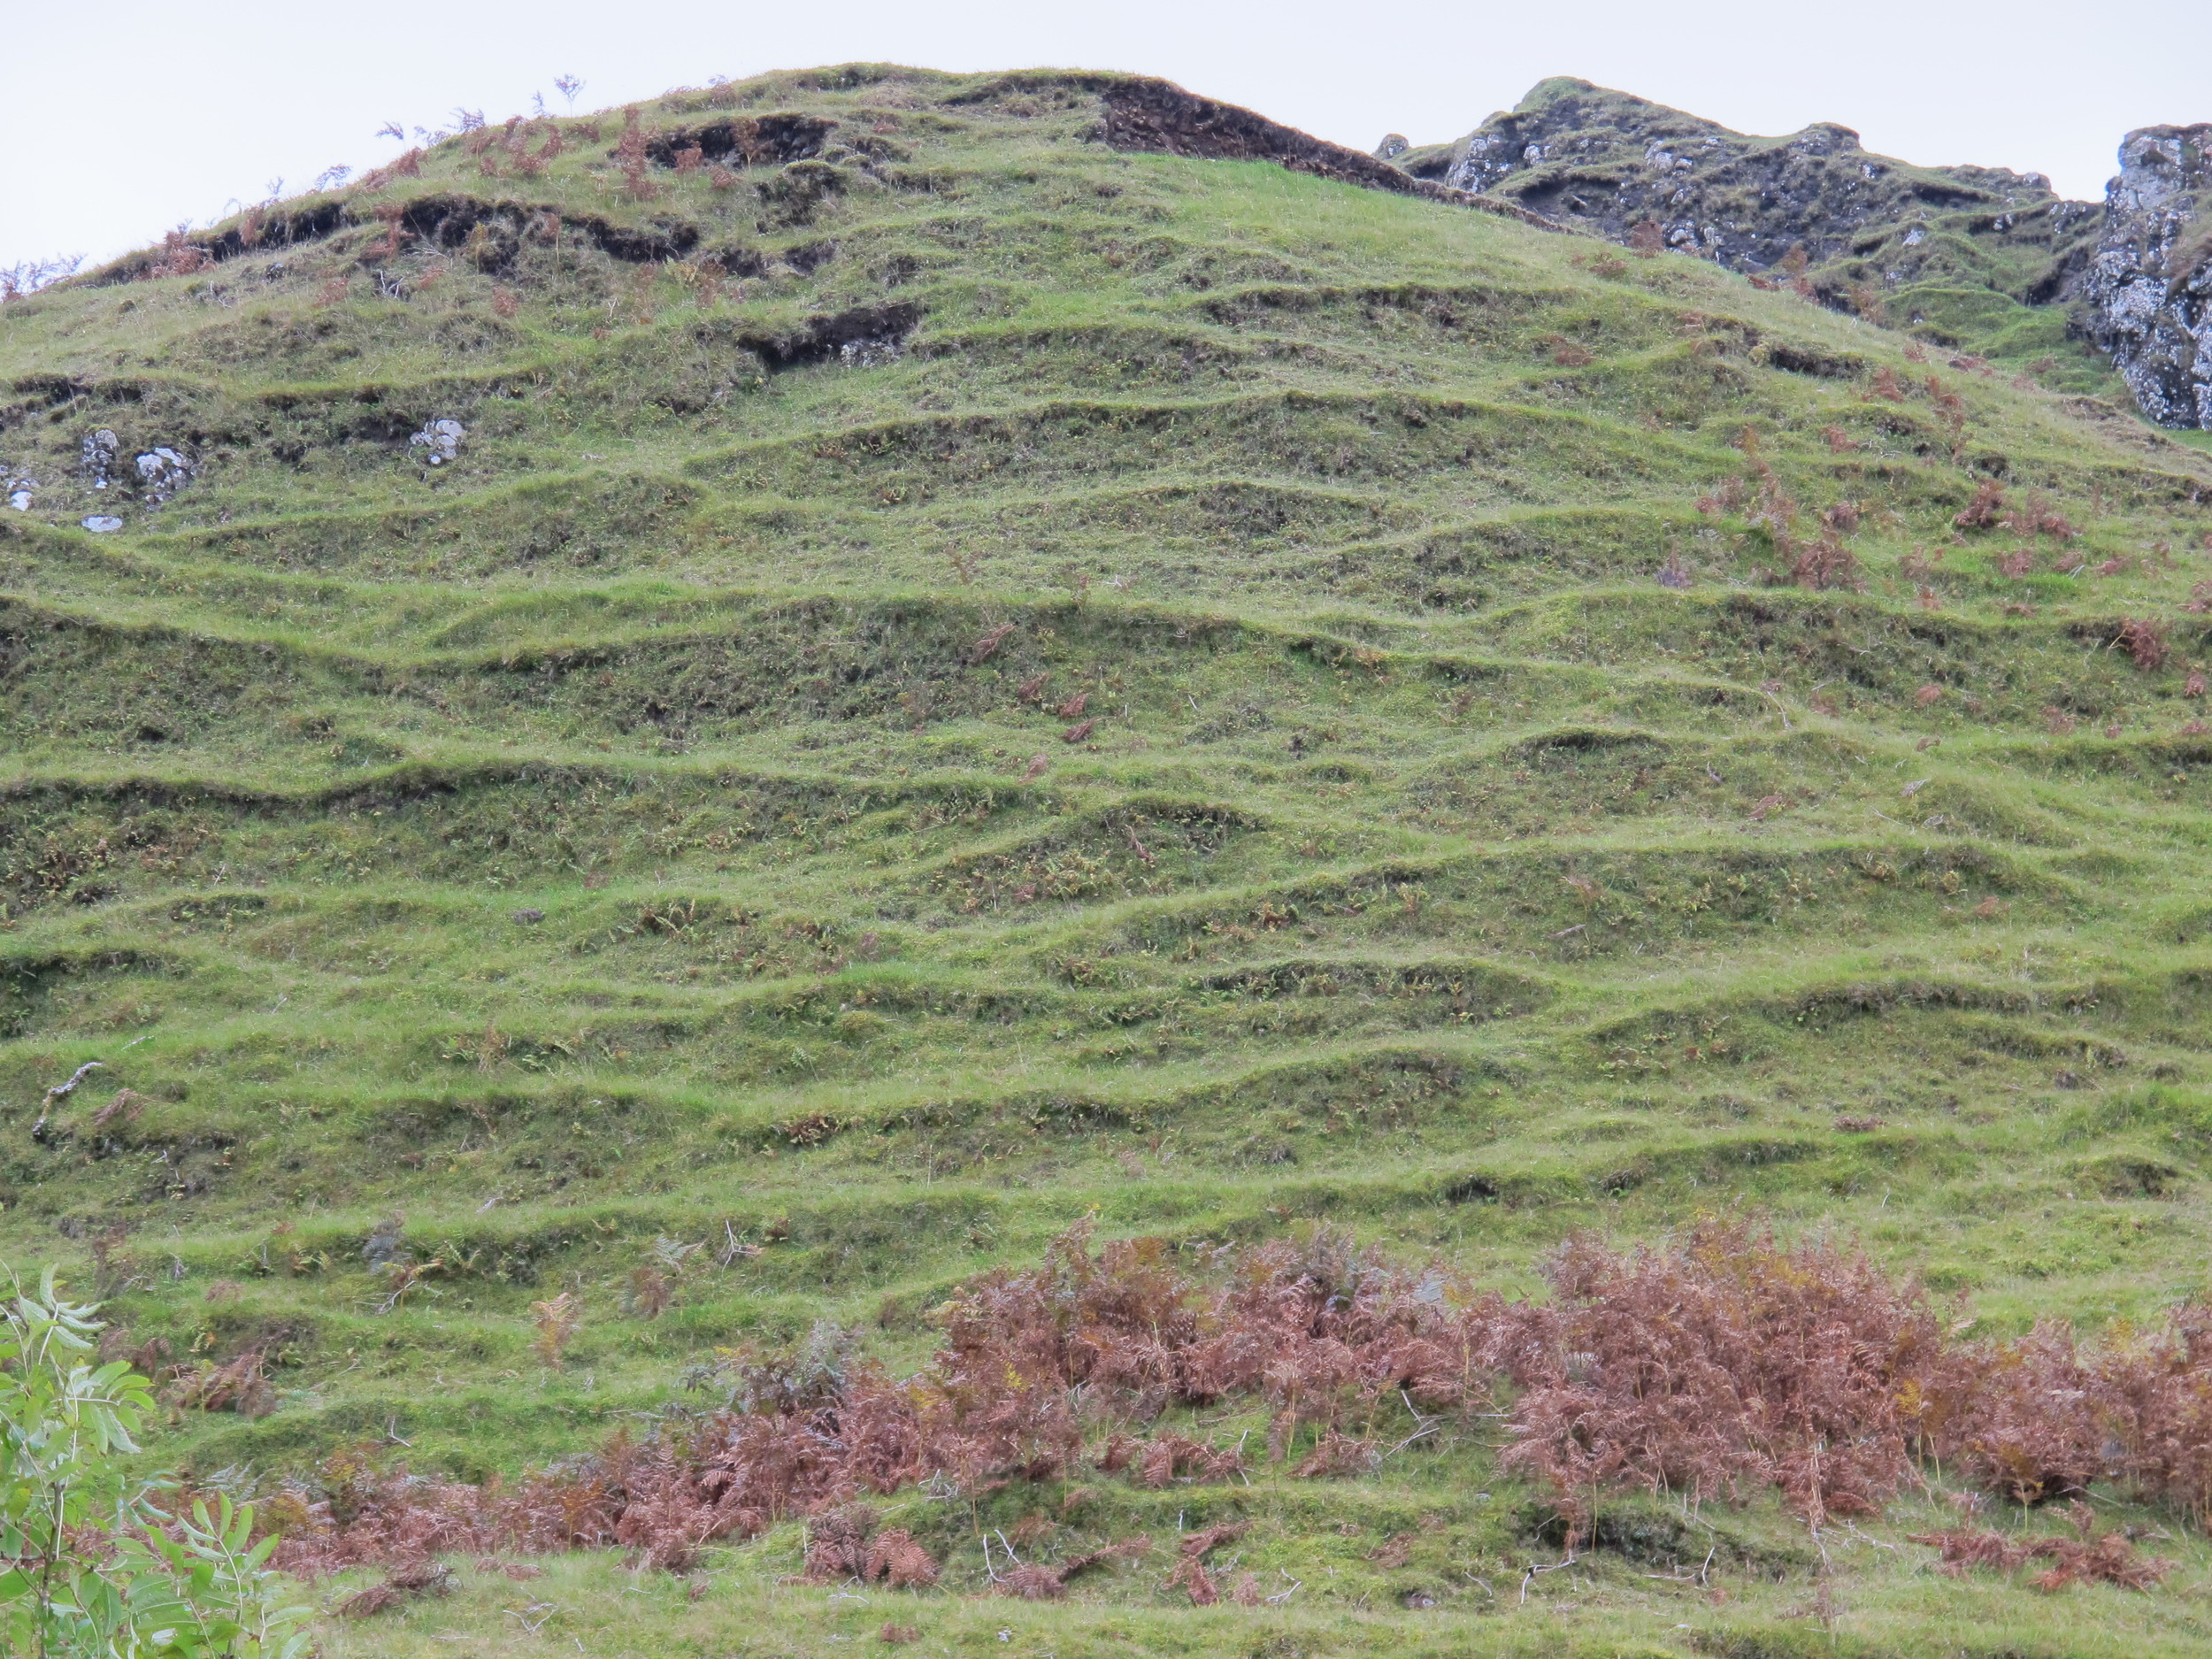 Centuries of sheep trails have carved permanent wrinkles into the rounded hills at Fairy Glen.